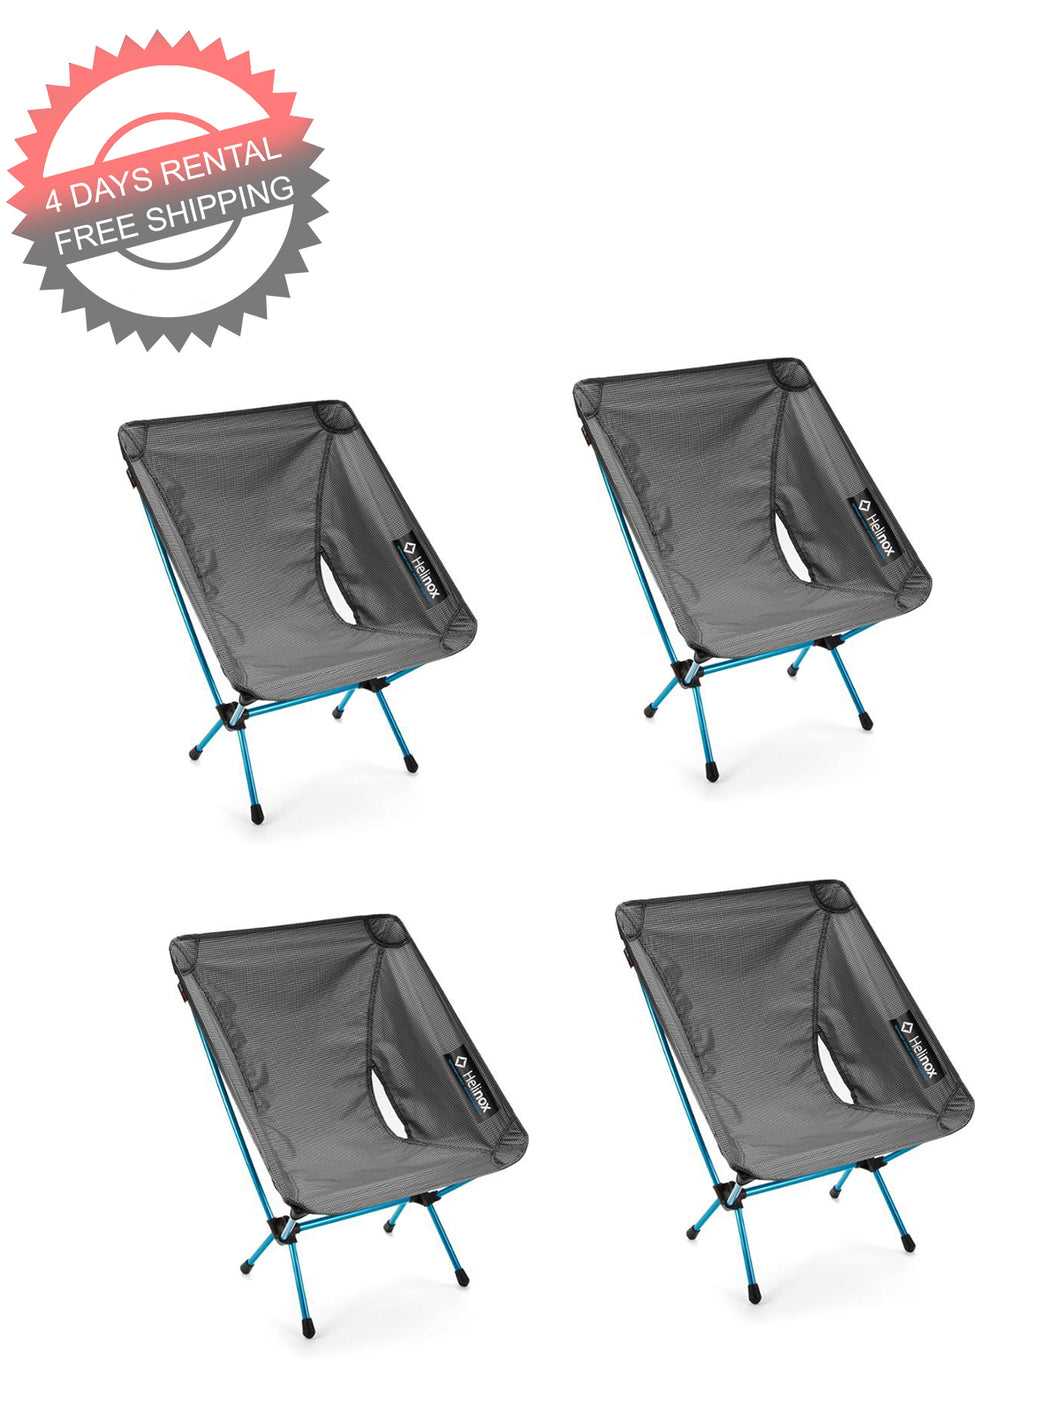 4 x Helinox Chair Zero (4 Days Rental and FREE Shipping)